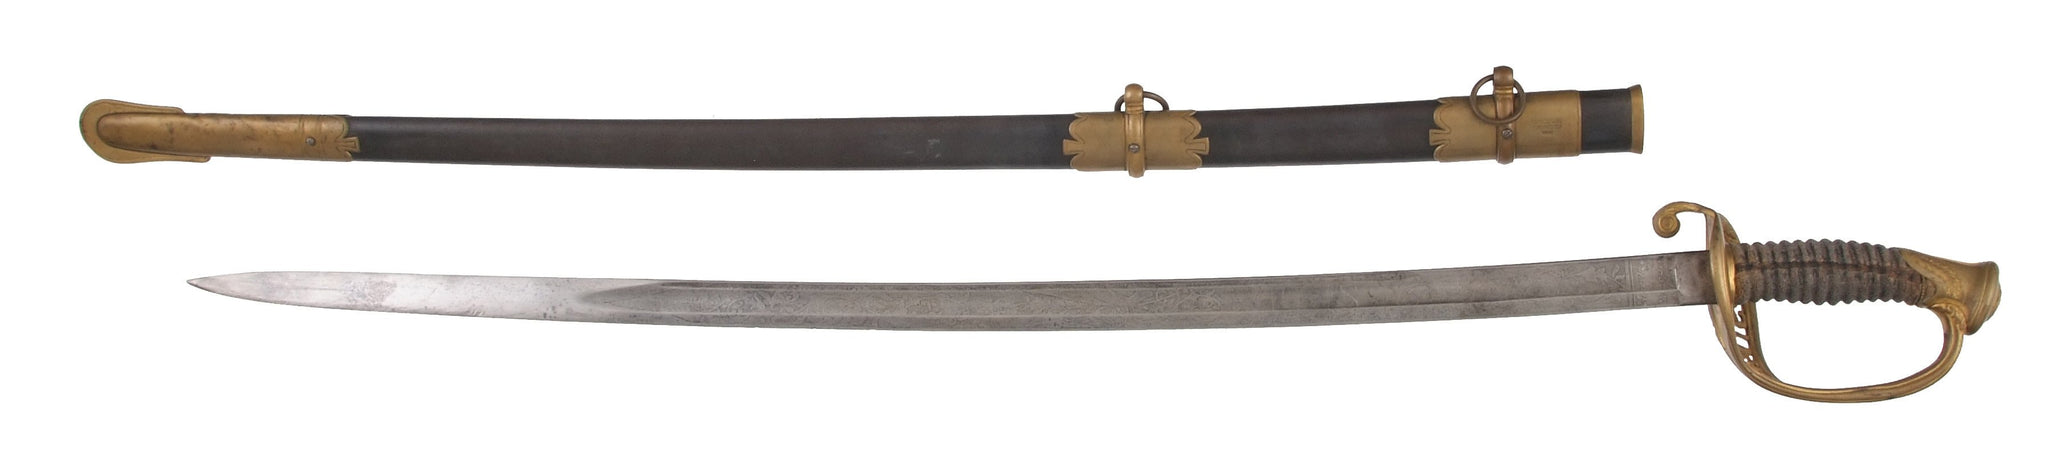 US M1850 STAFF AND FIELD OFFICERS SWORD